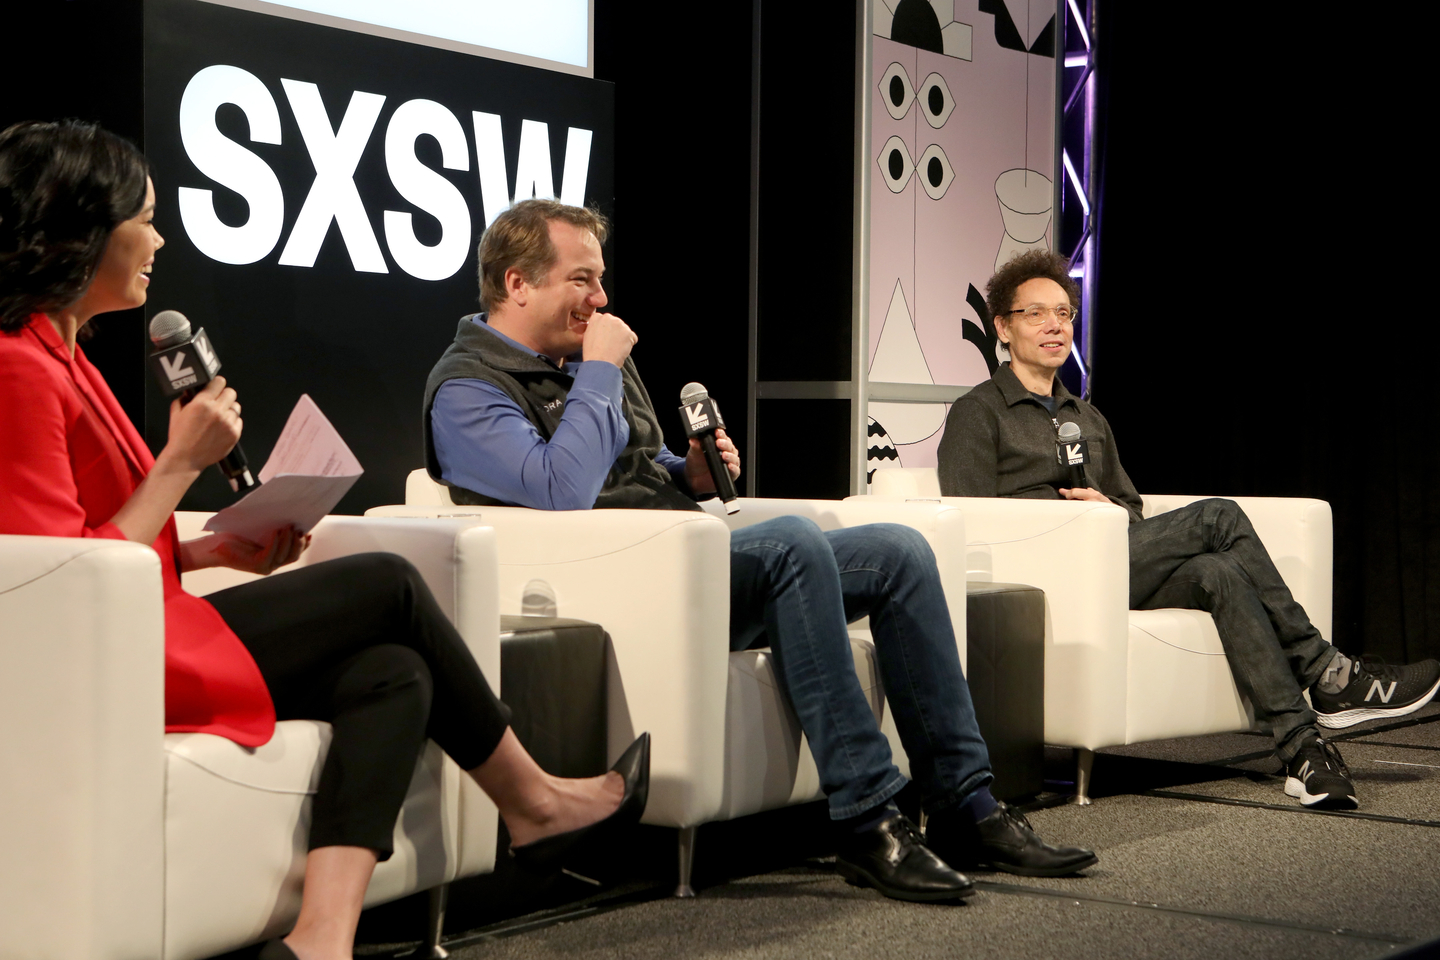 (L-R) Jo Ling Kent, Chris Urmson, and Malcolm Gladwell at Featured Session: Self-Driving Cars: The Future is When? Photo by Samantha Burkardt/Getty Images for SXSW